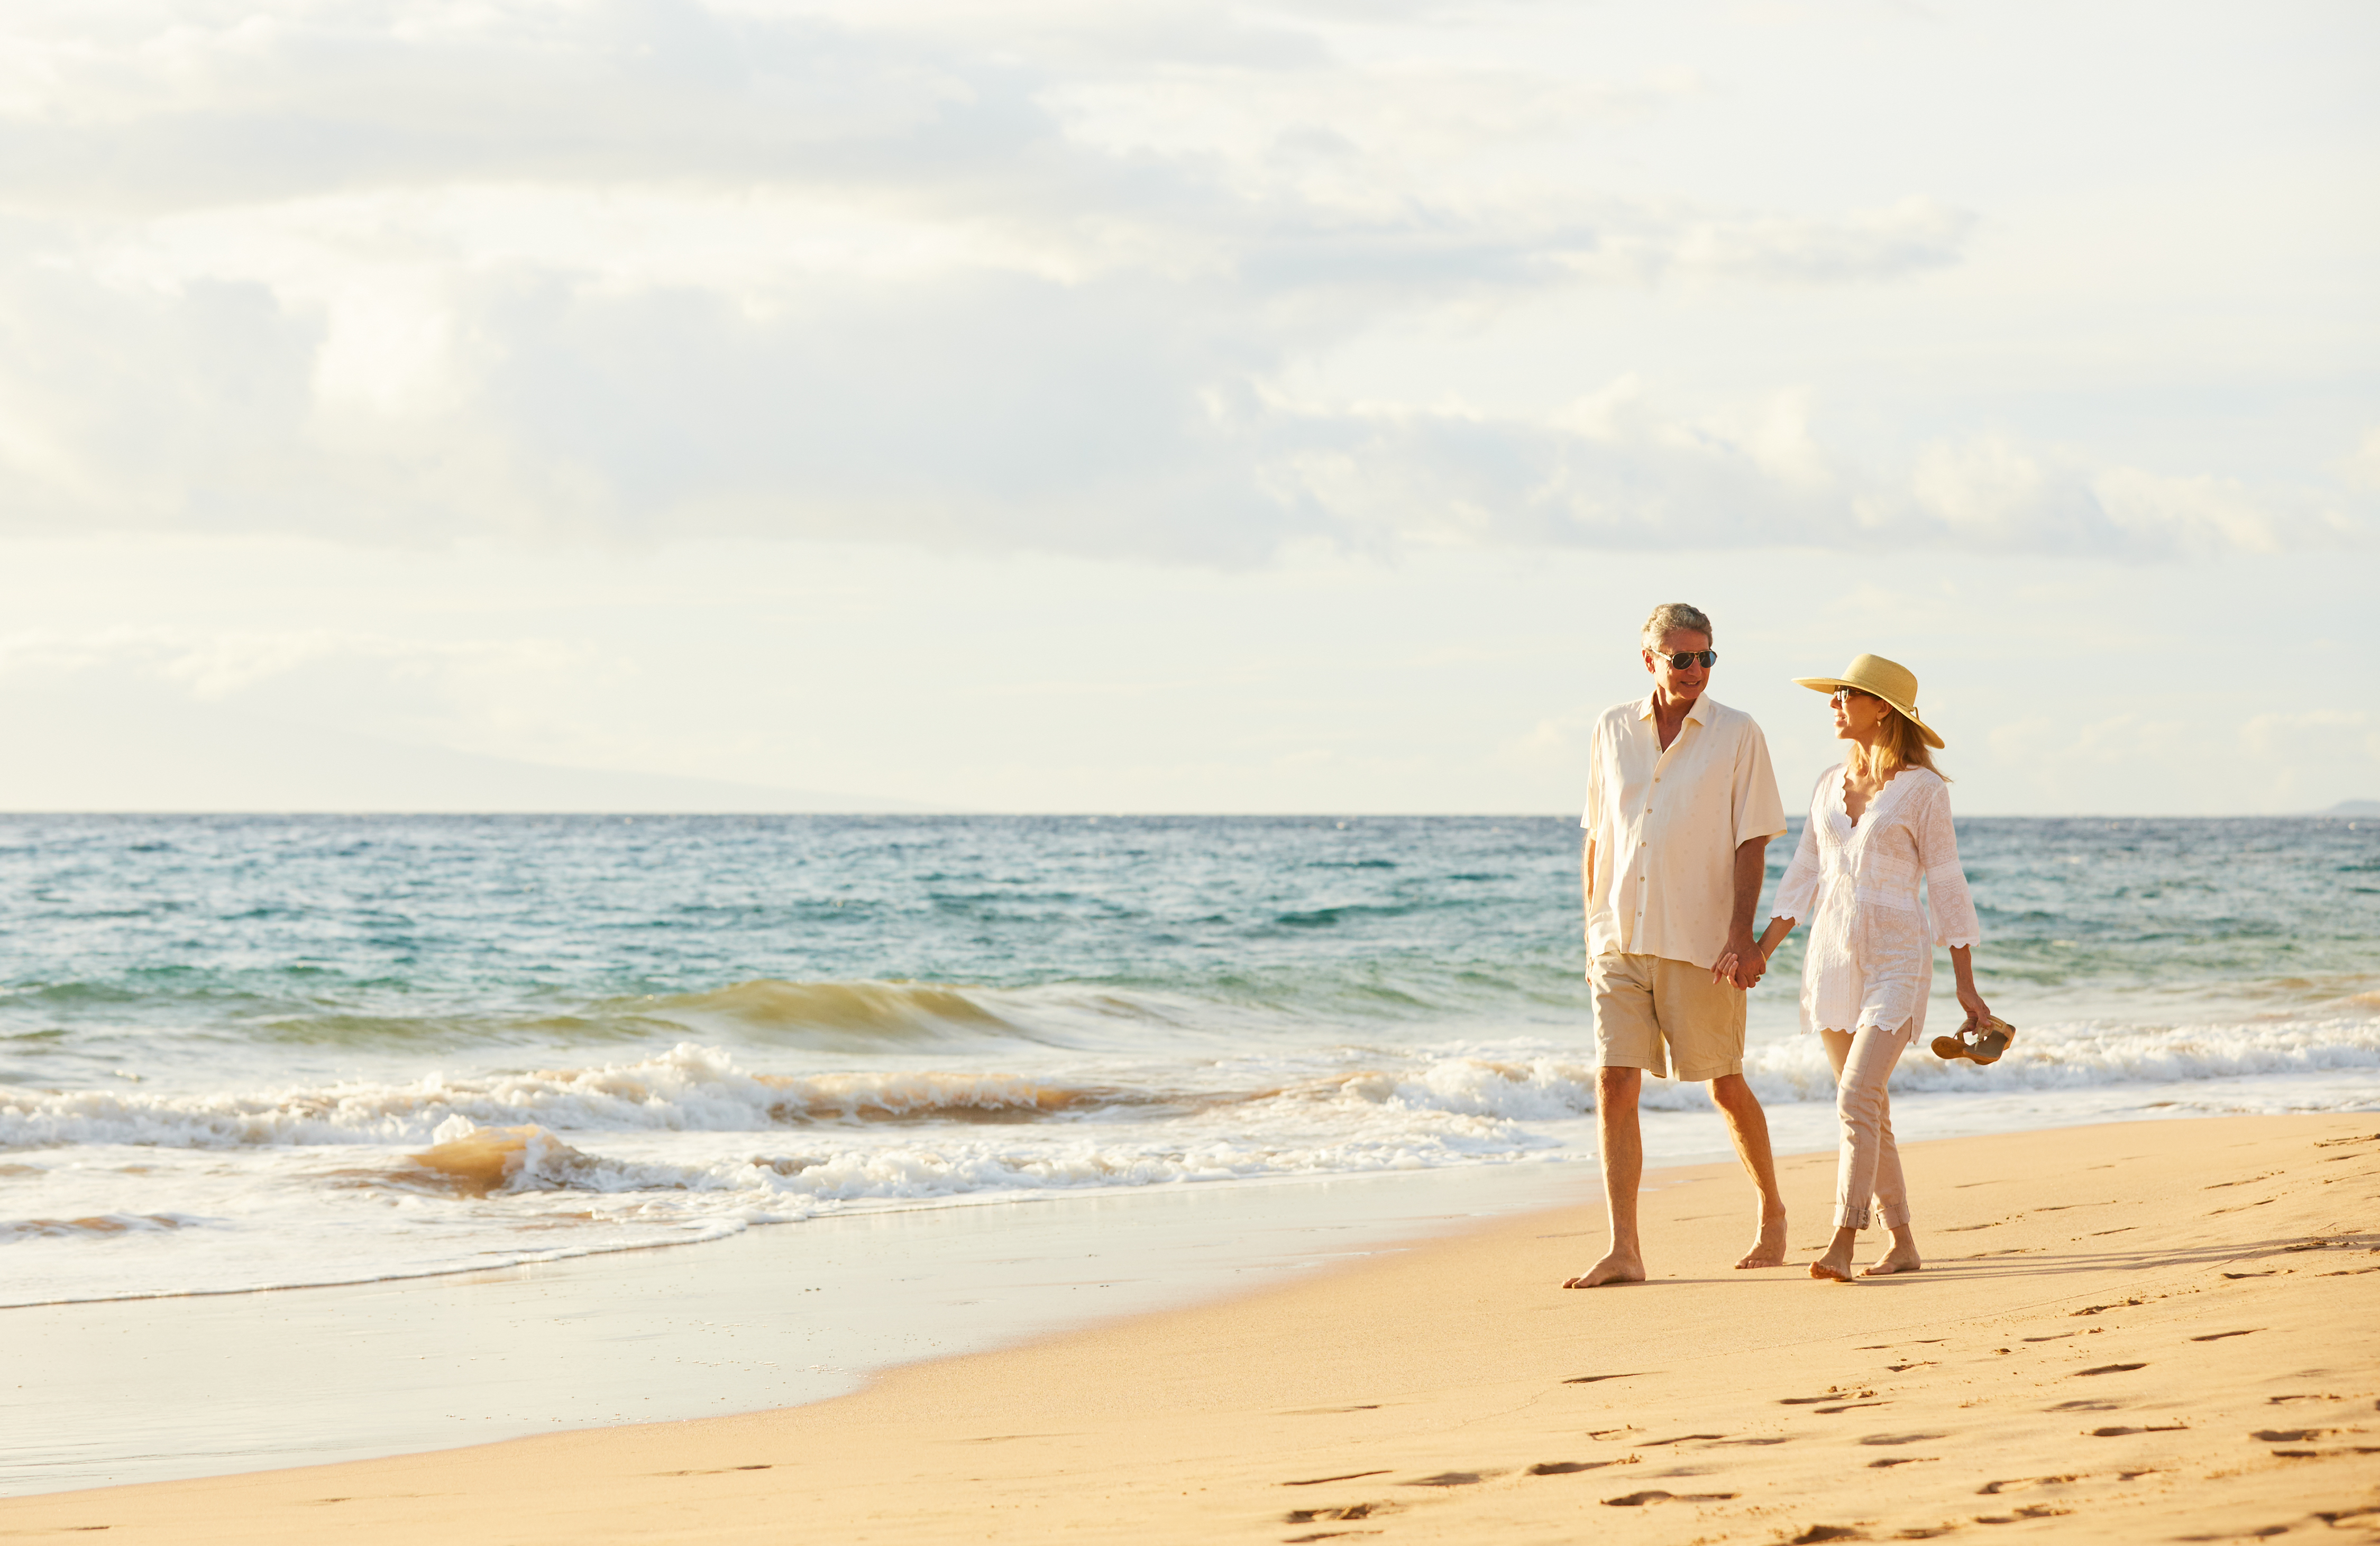 retirement | beaches | best beaches for retirement | beach towns | best beaches | beach living | retirement beaches